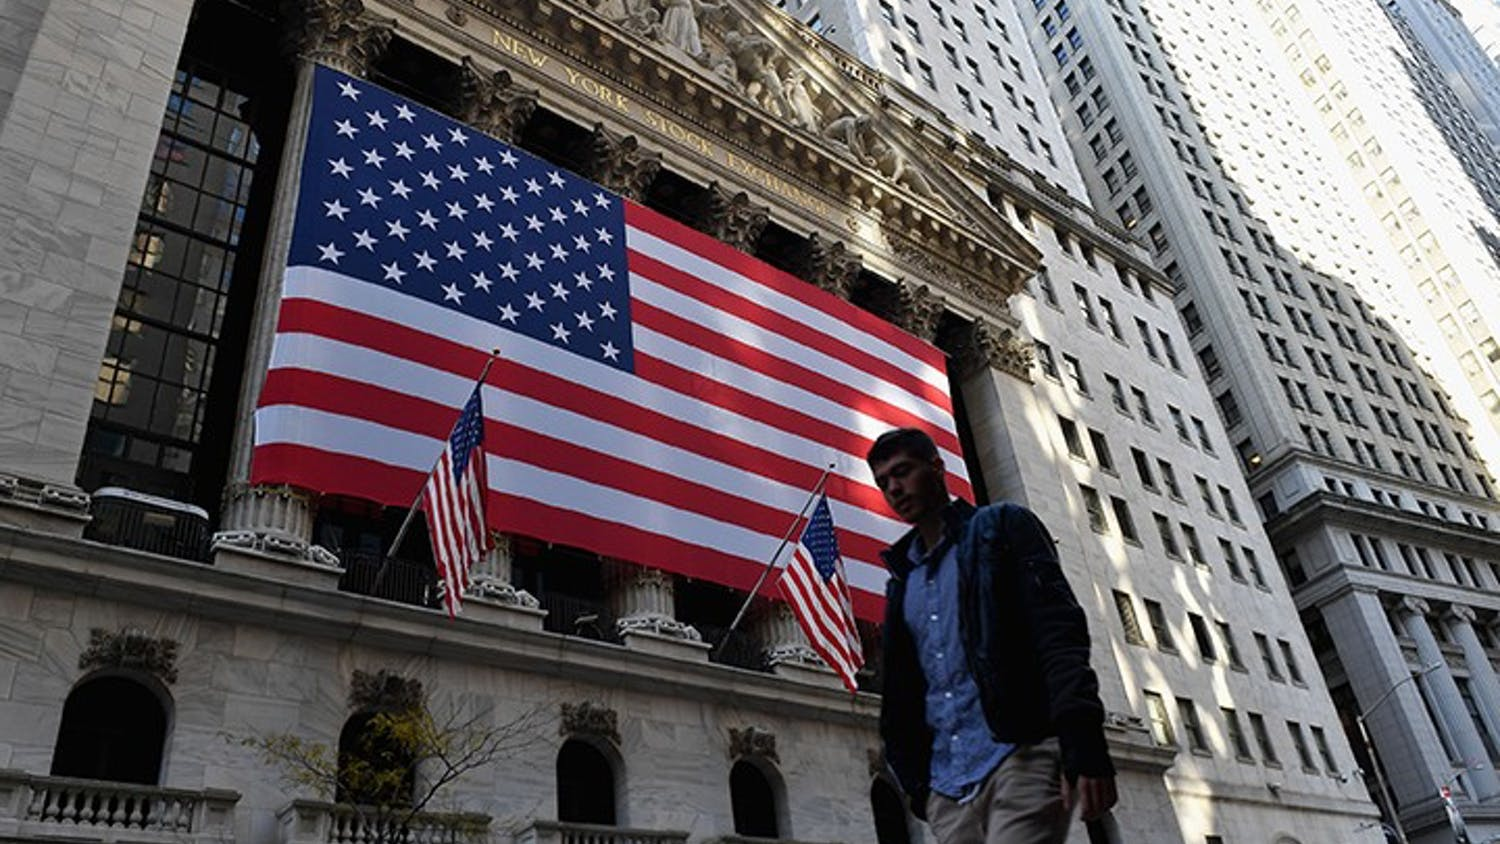 The New York Stock Exchange is located on Wall Street in New York City. It is the largest stock exchange in the world.